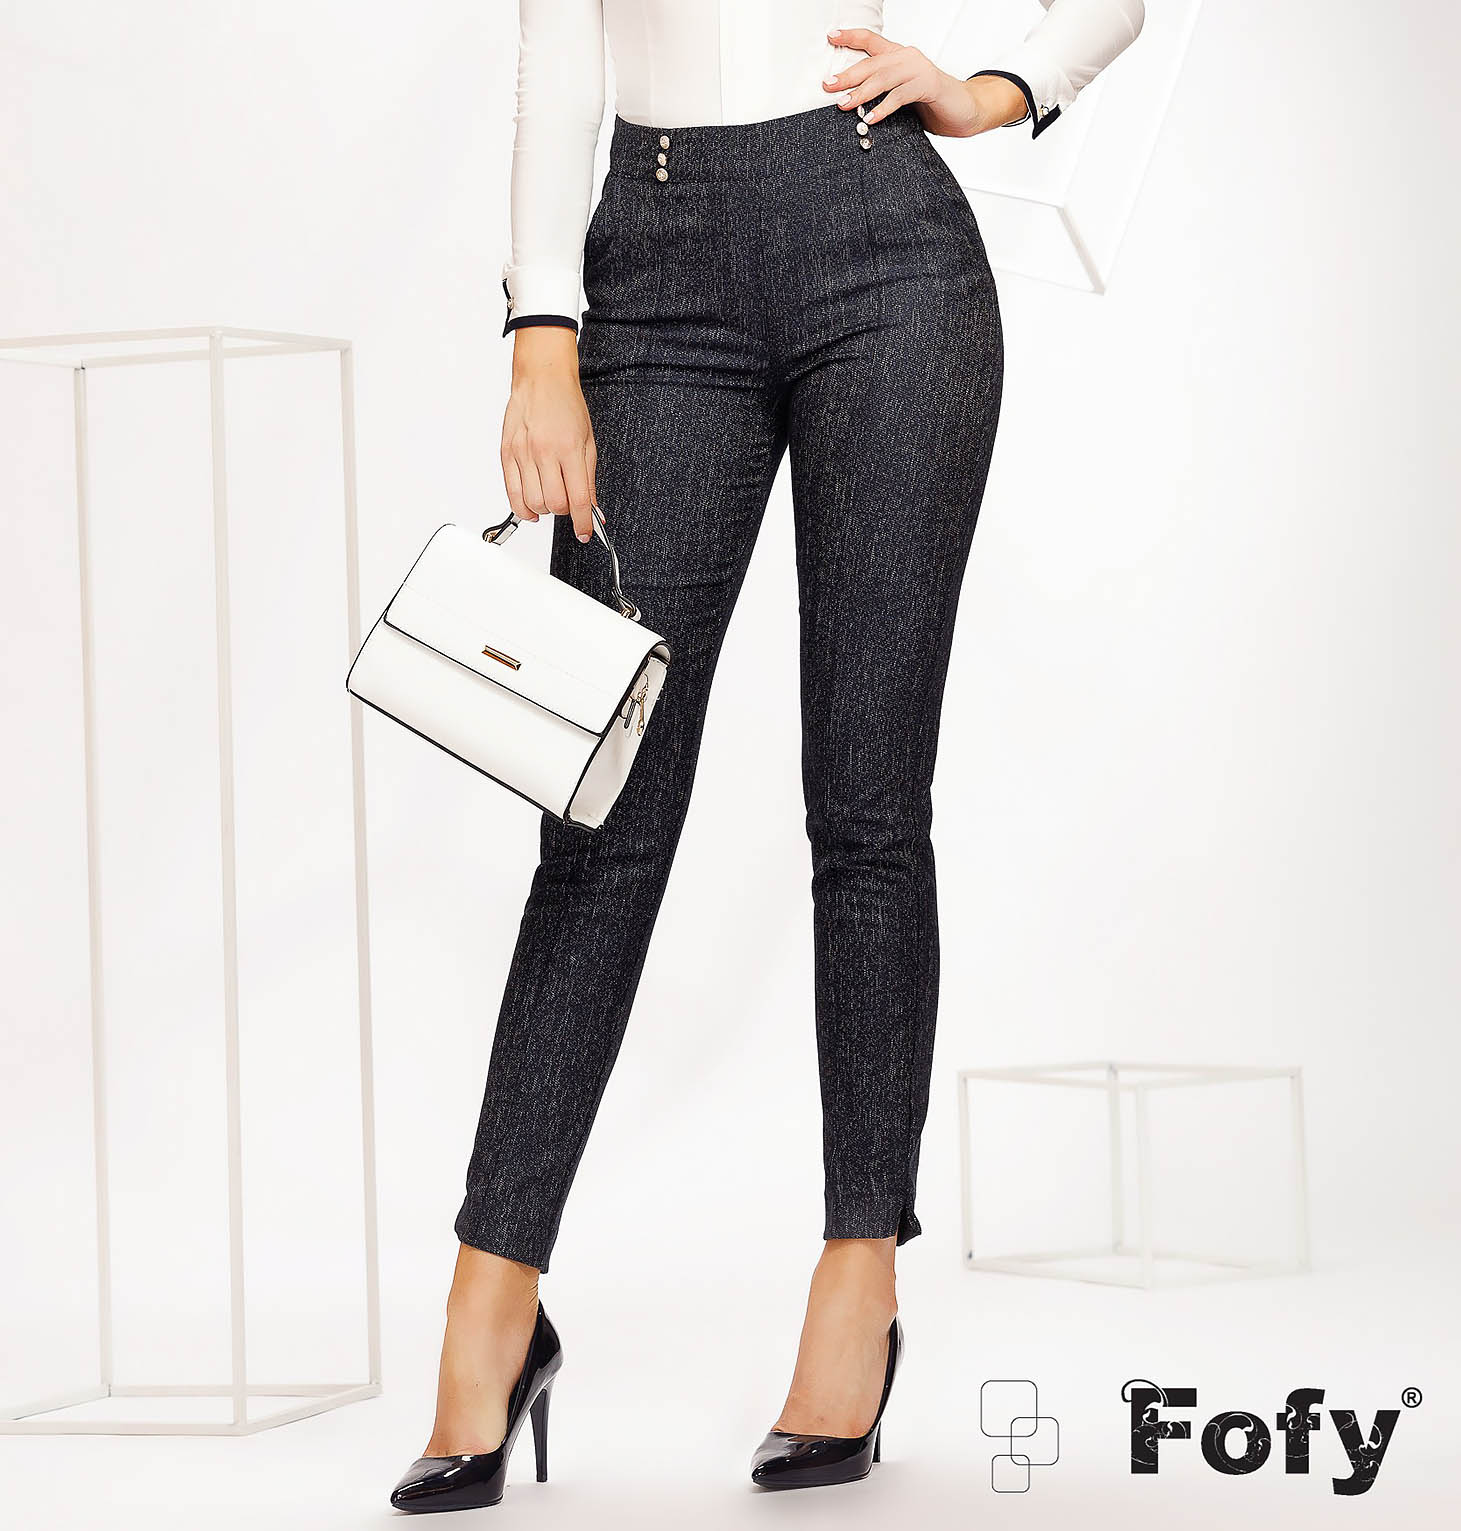 Darkblue trousers with button accessories conical medium waist office thin fabric lateral pockets